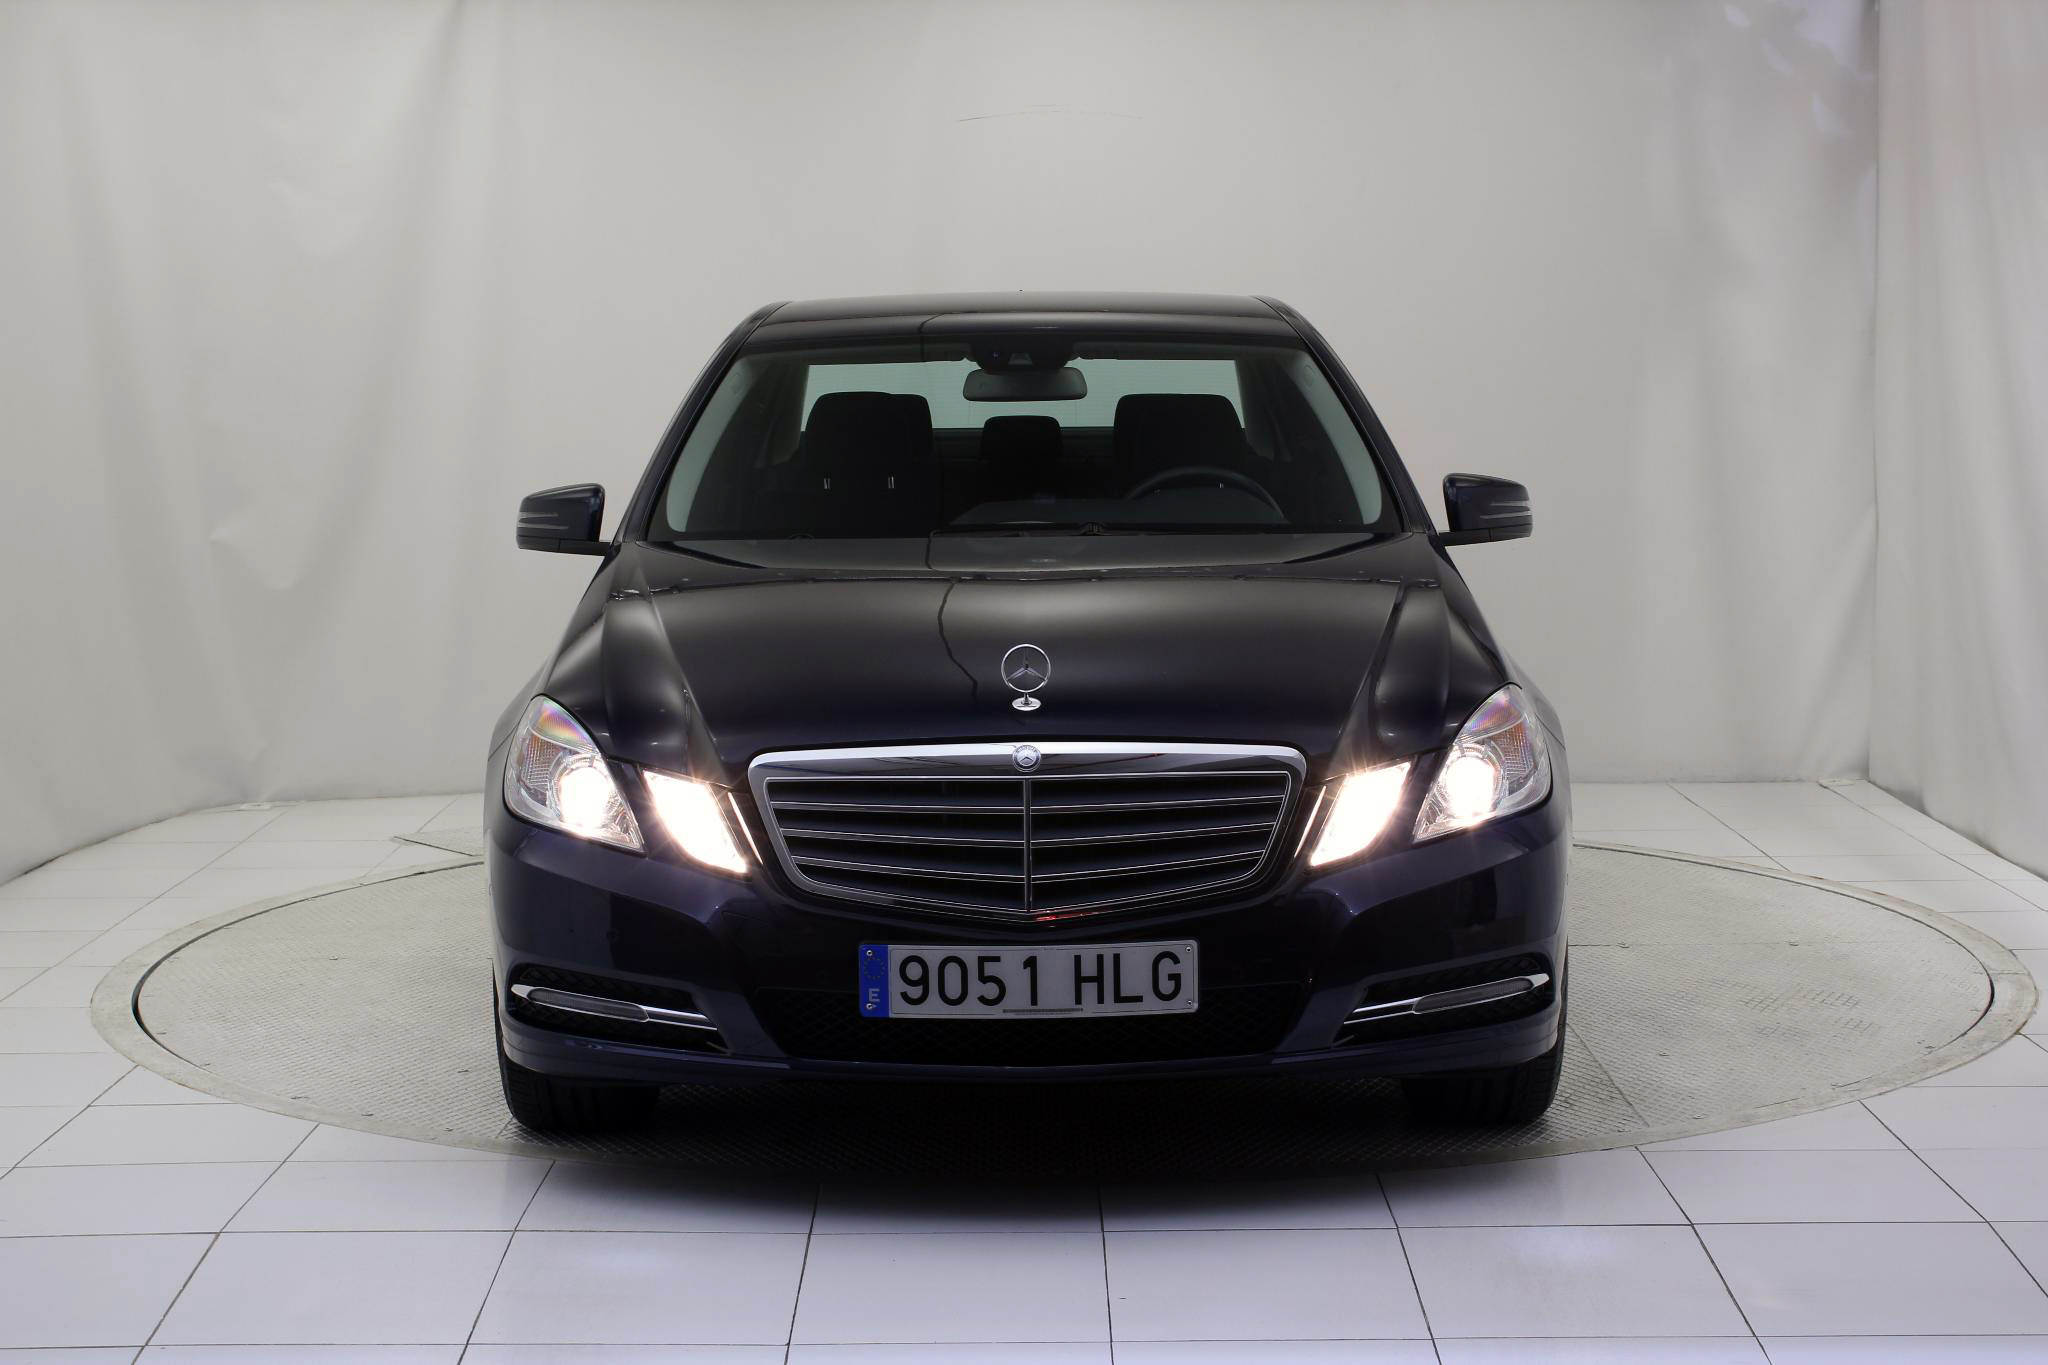 Mercedes-Benz Clase E CLASE E 250 CDI BLUE EFFICIENCY AUTO imagen 2